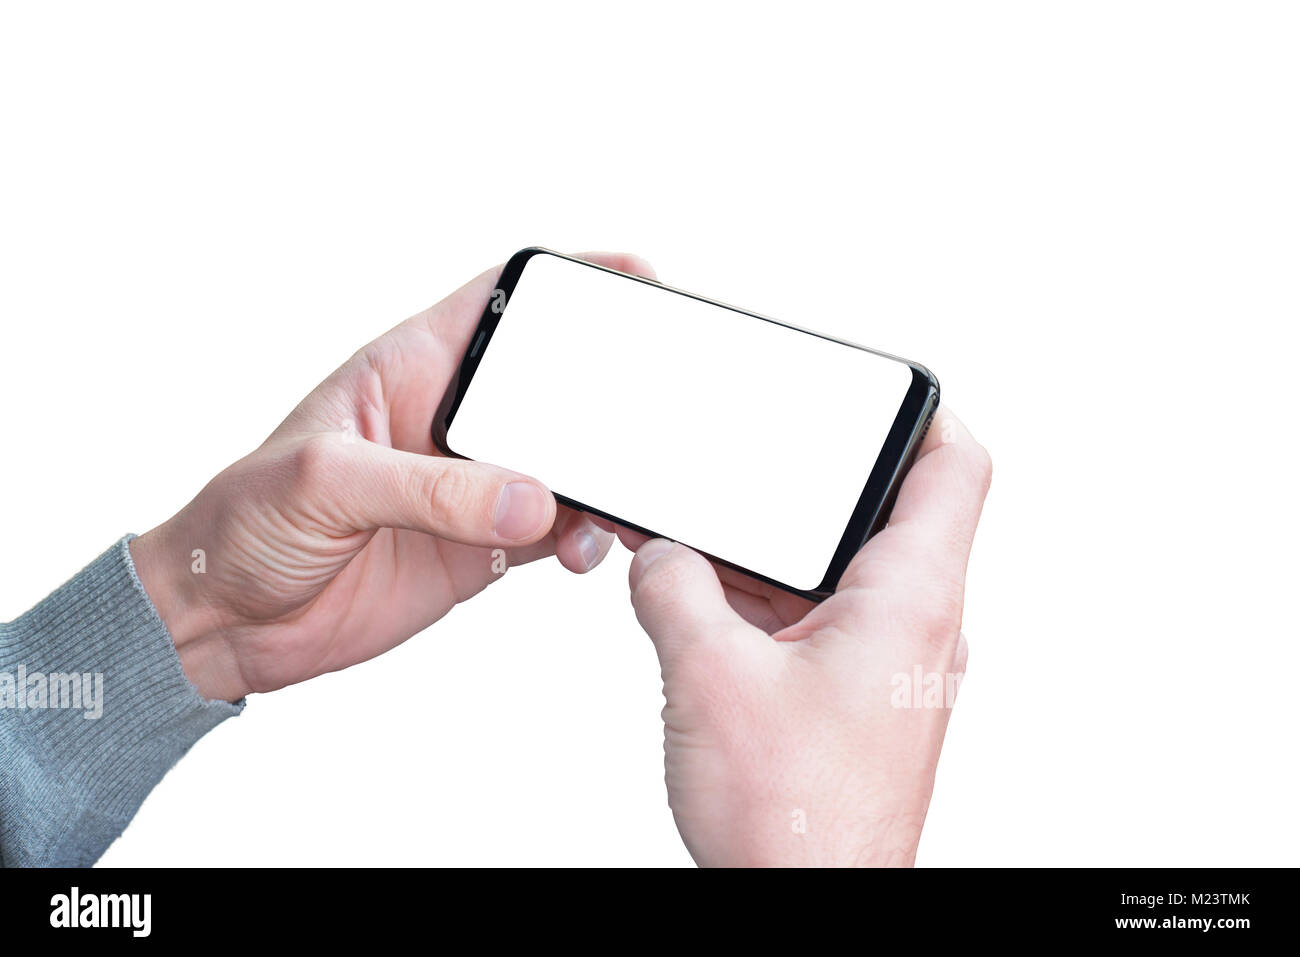 isolated hands and mobile phone in horizontal position for mockup